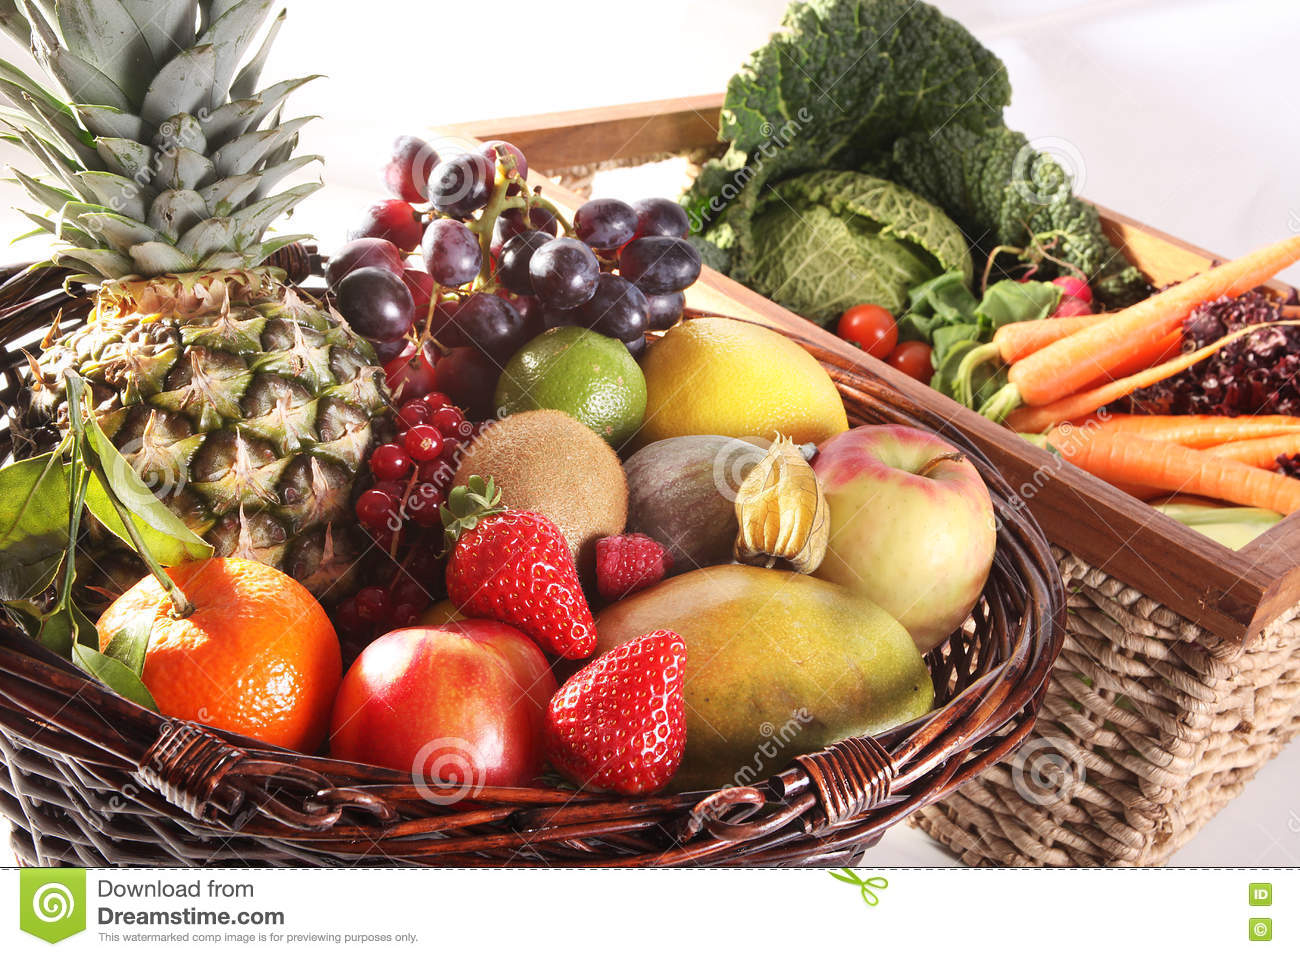 Healthy Eating Background Food Photography Different Fruits And Vegetables Isolated White Background Stock Photo Image Of Fresh Lots 79542508